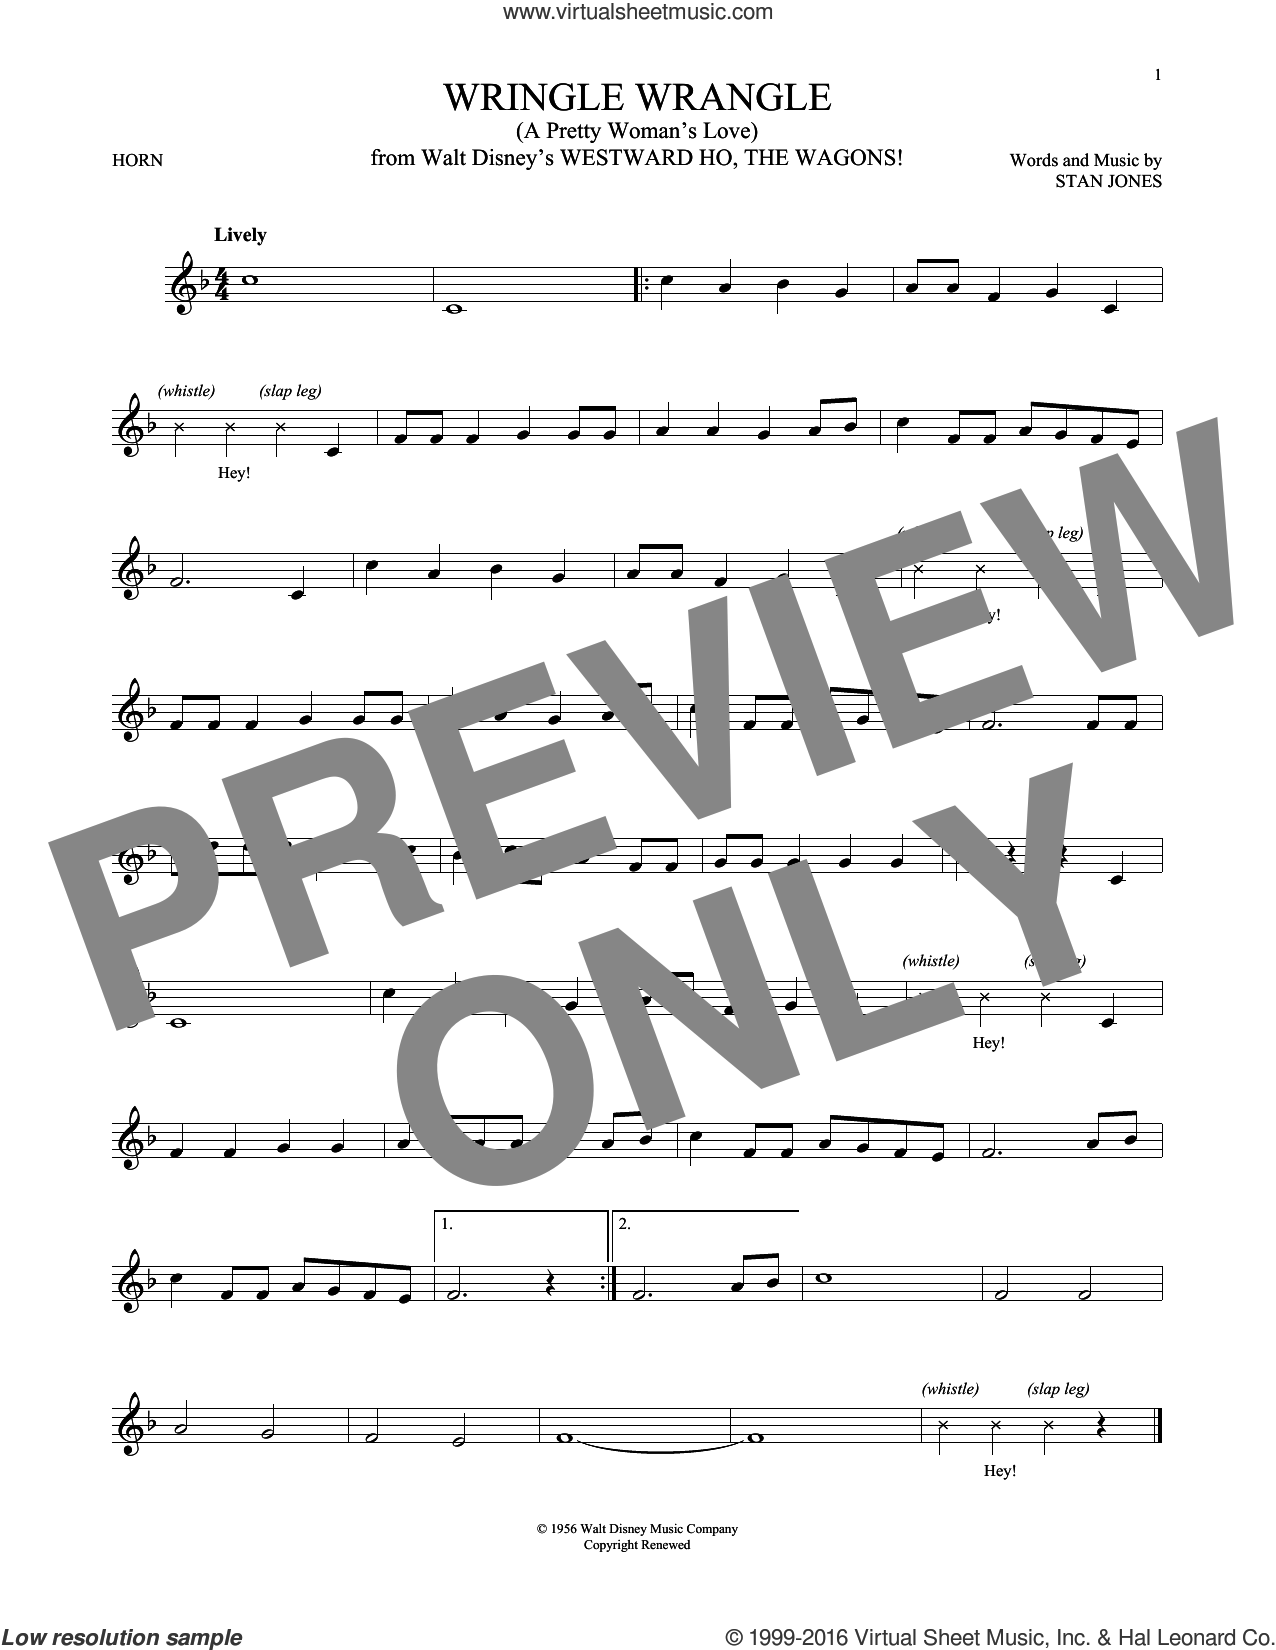 Wringle Wrangle (A Pretty Woman's Love) sheet music for horn solo by Stan Jones, intermediate